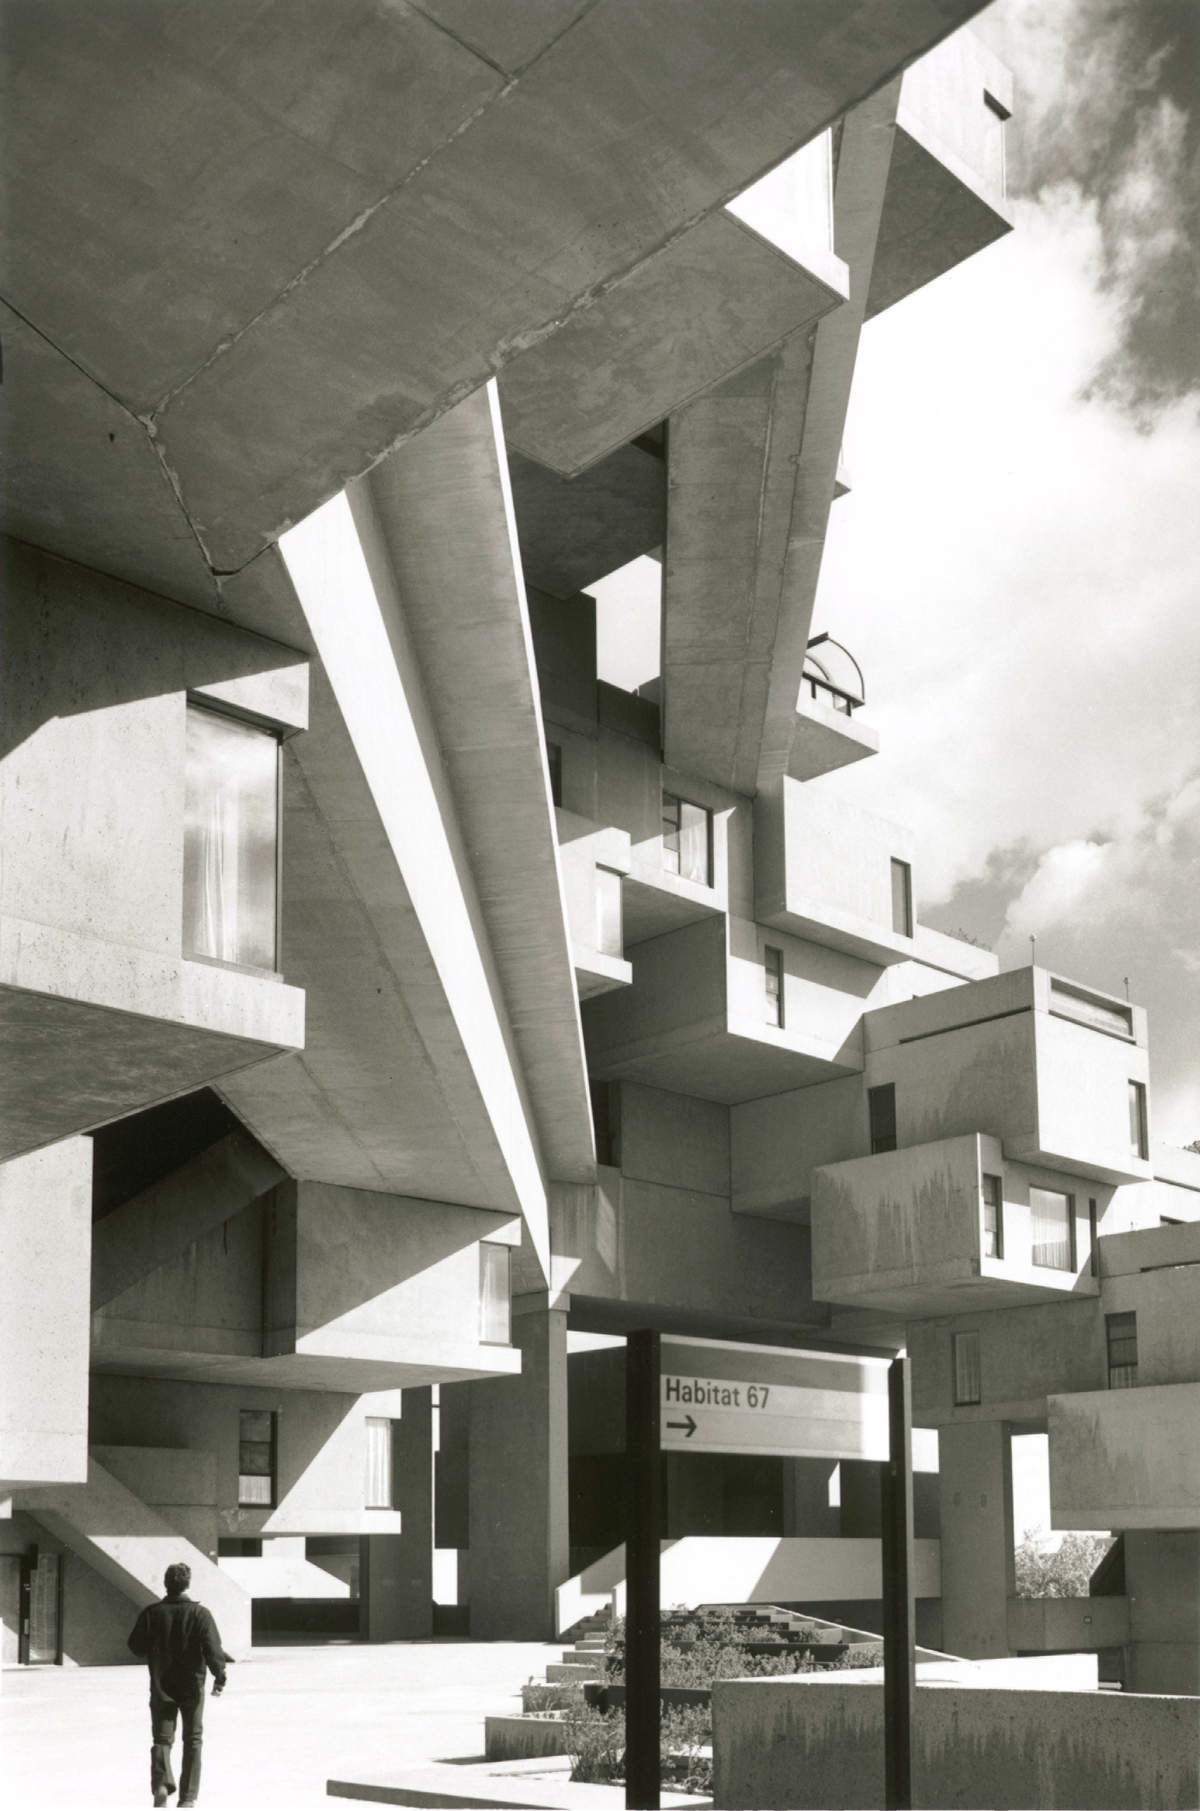 Habitat 67: pedestrian view from below. Credit: Jerry Spearman courtesy of Safdie Architects